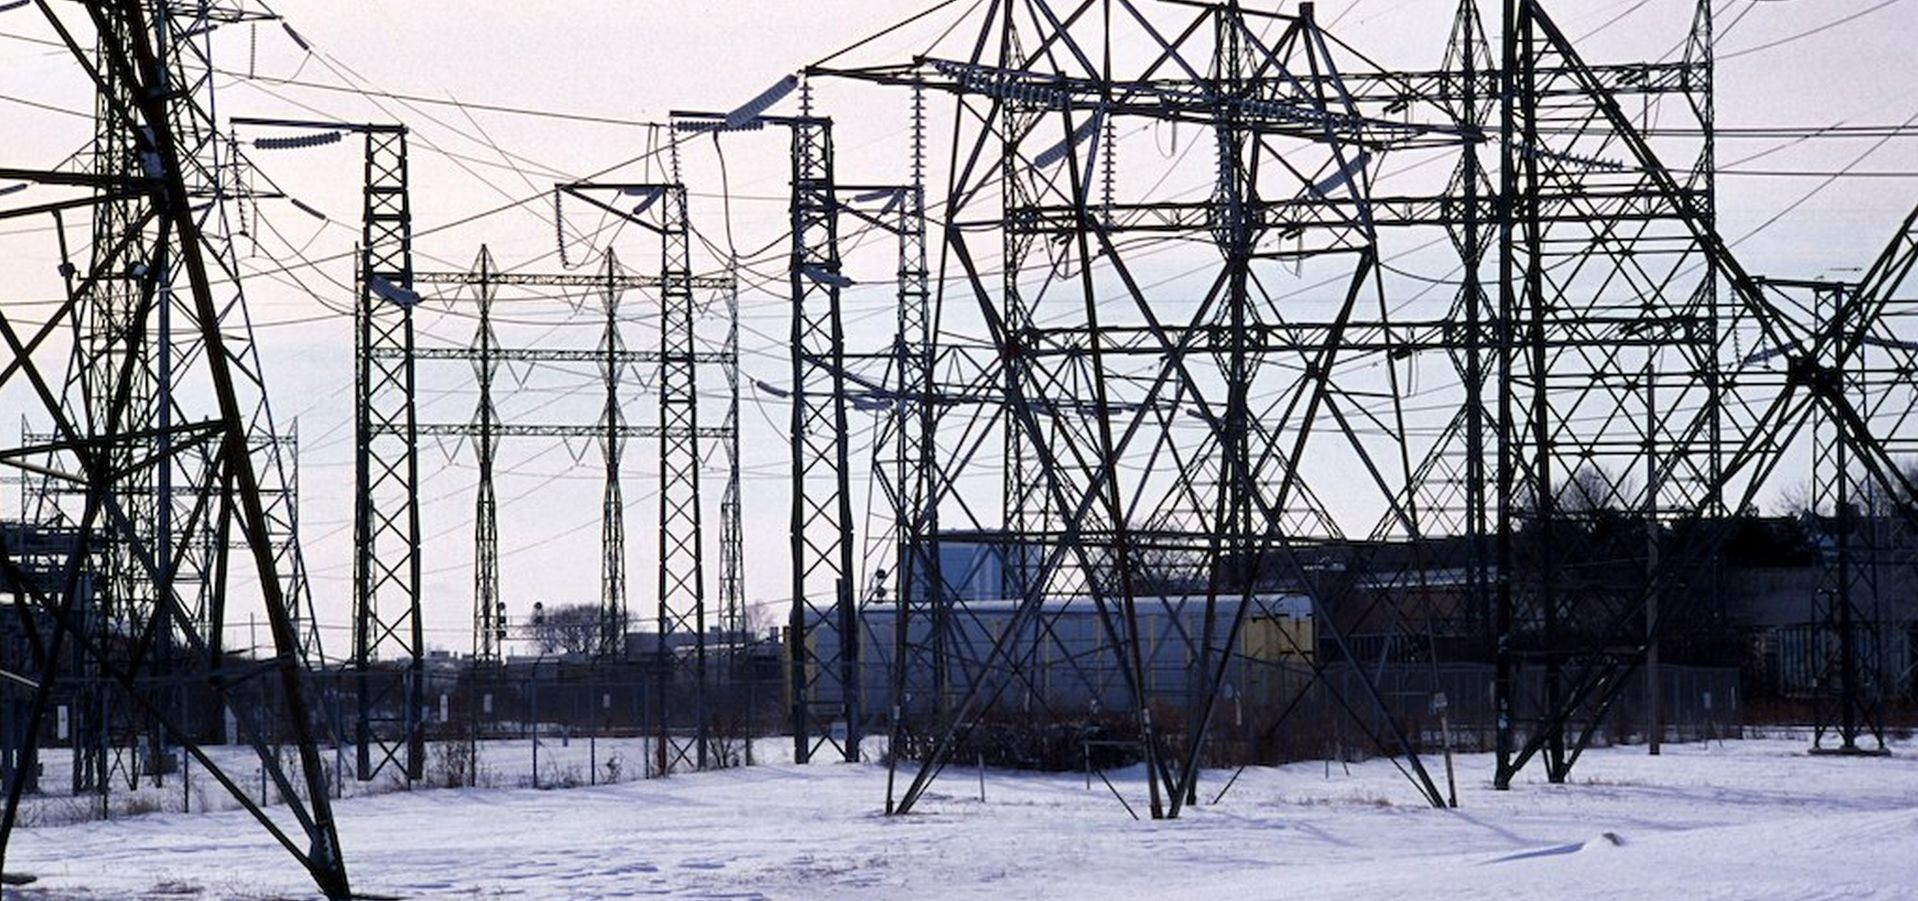 A landscape of power lines is covered with snow.